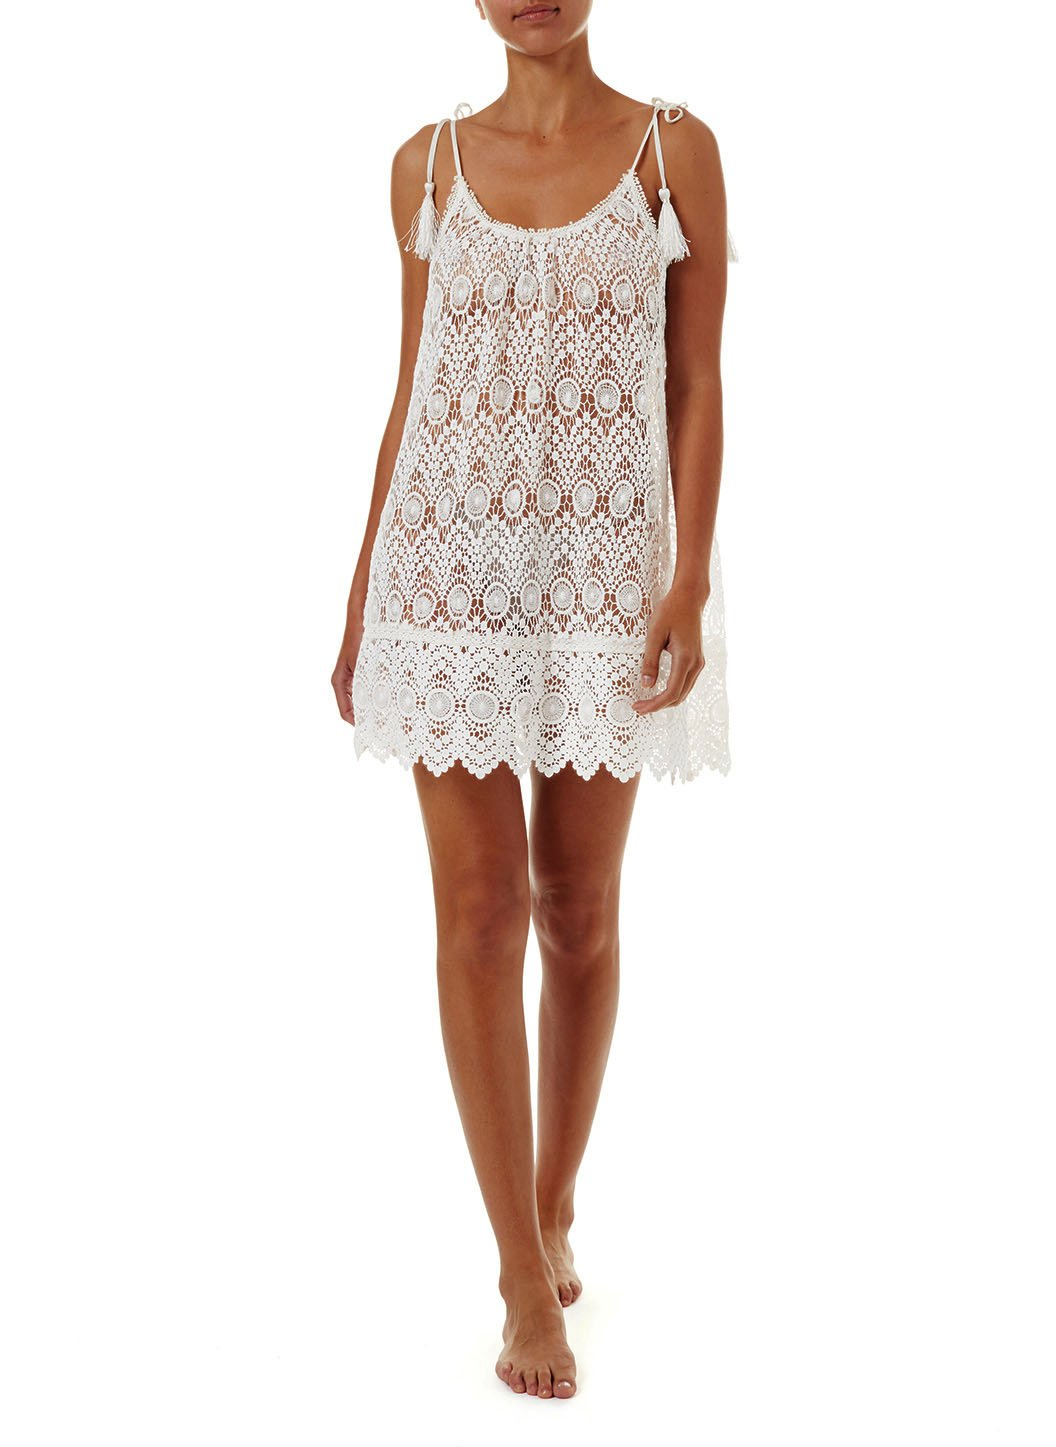 ana cream lace short tieshoulder beach dress 2019 F